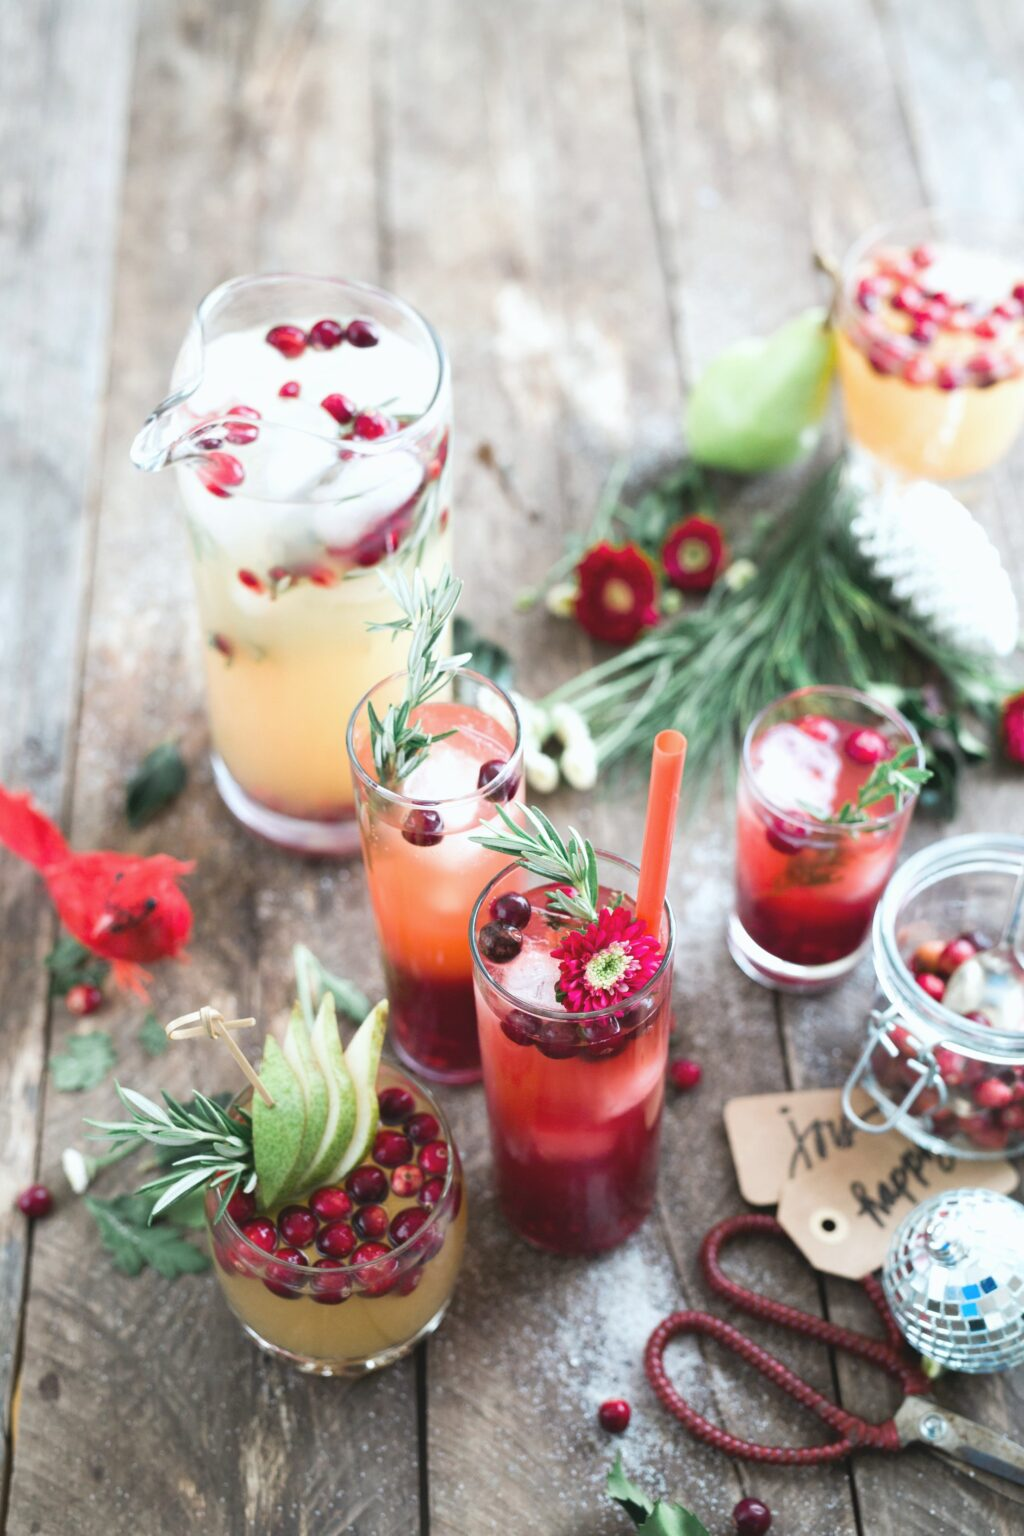 Glasses filled with beautiful cocktails and toppings that are festive for the Christmas season. Other Christmas items surround the drinks on a wooden table.